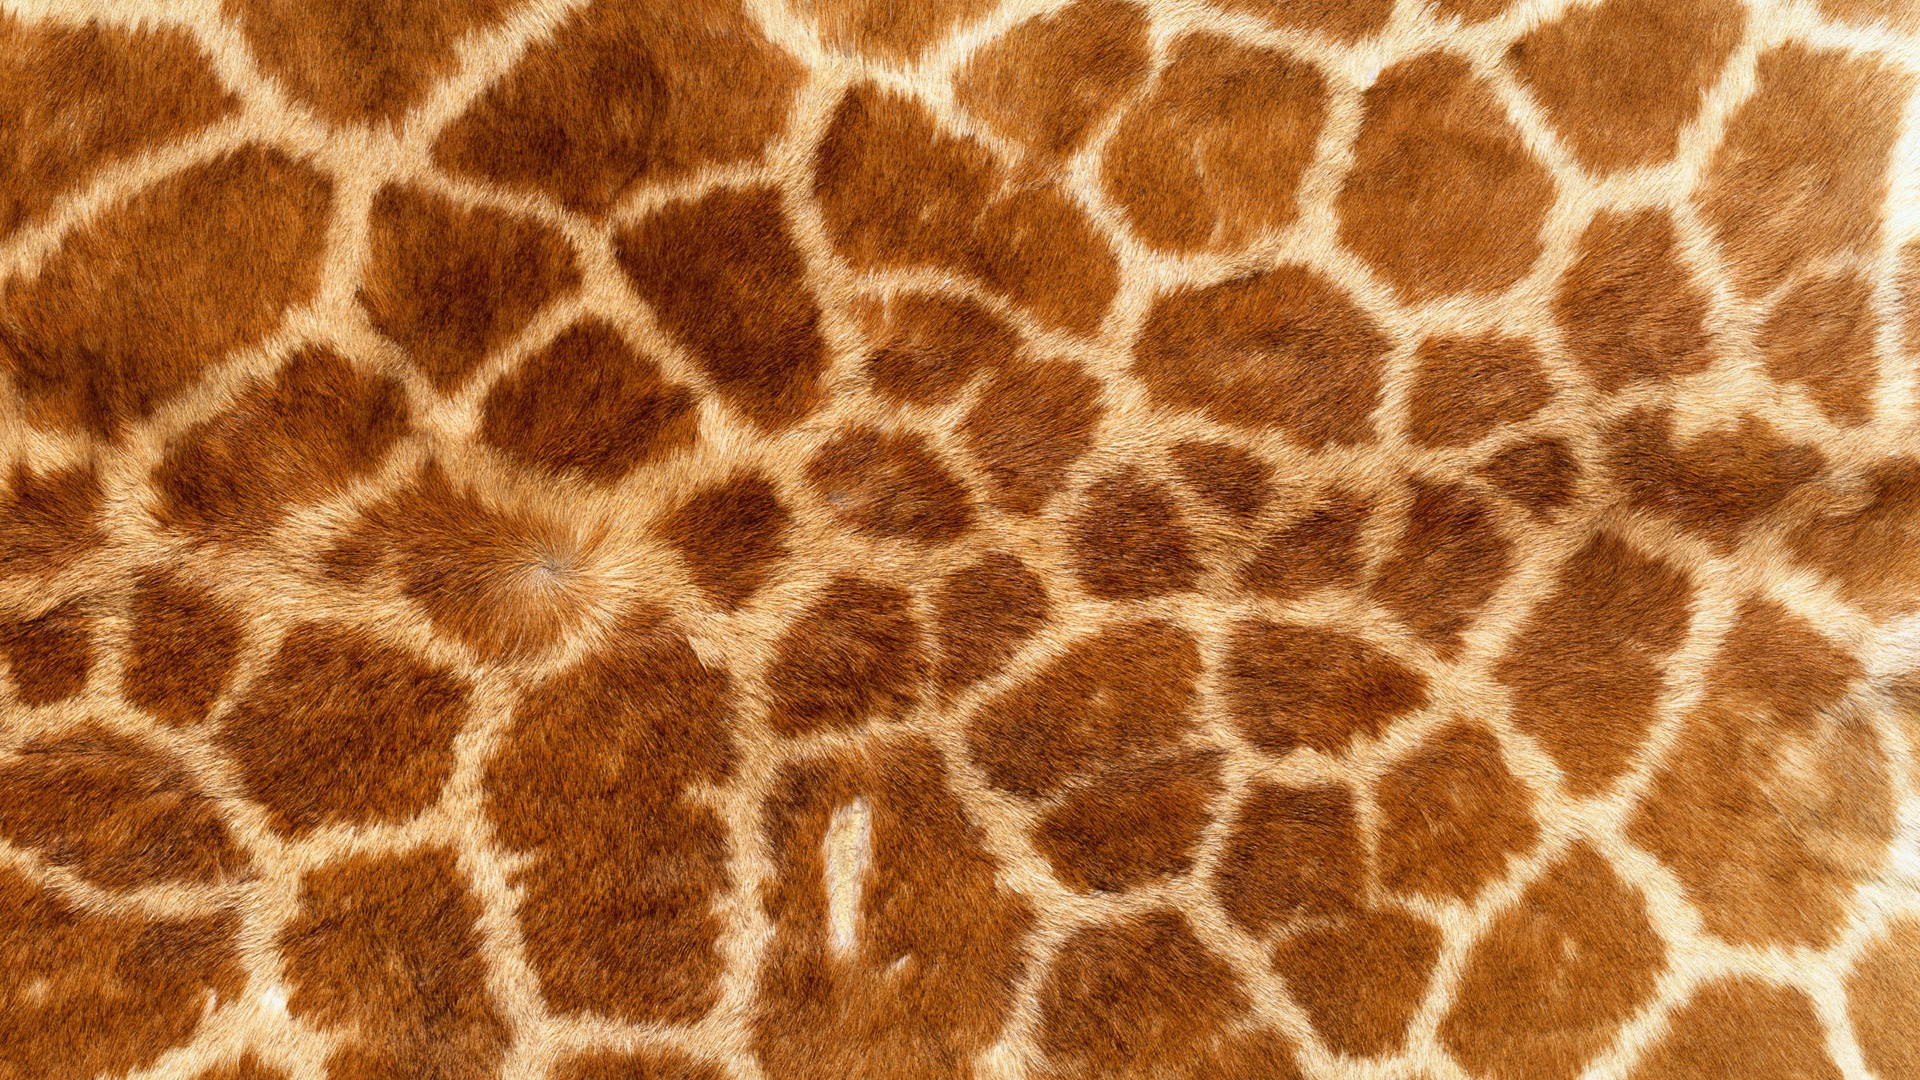 animal texture, skin, giraffe, download photo